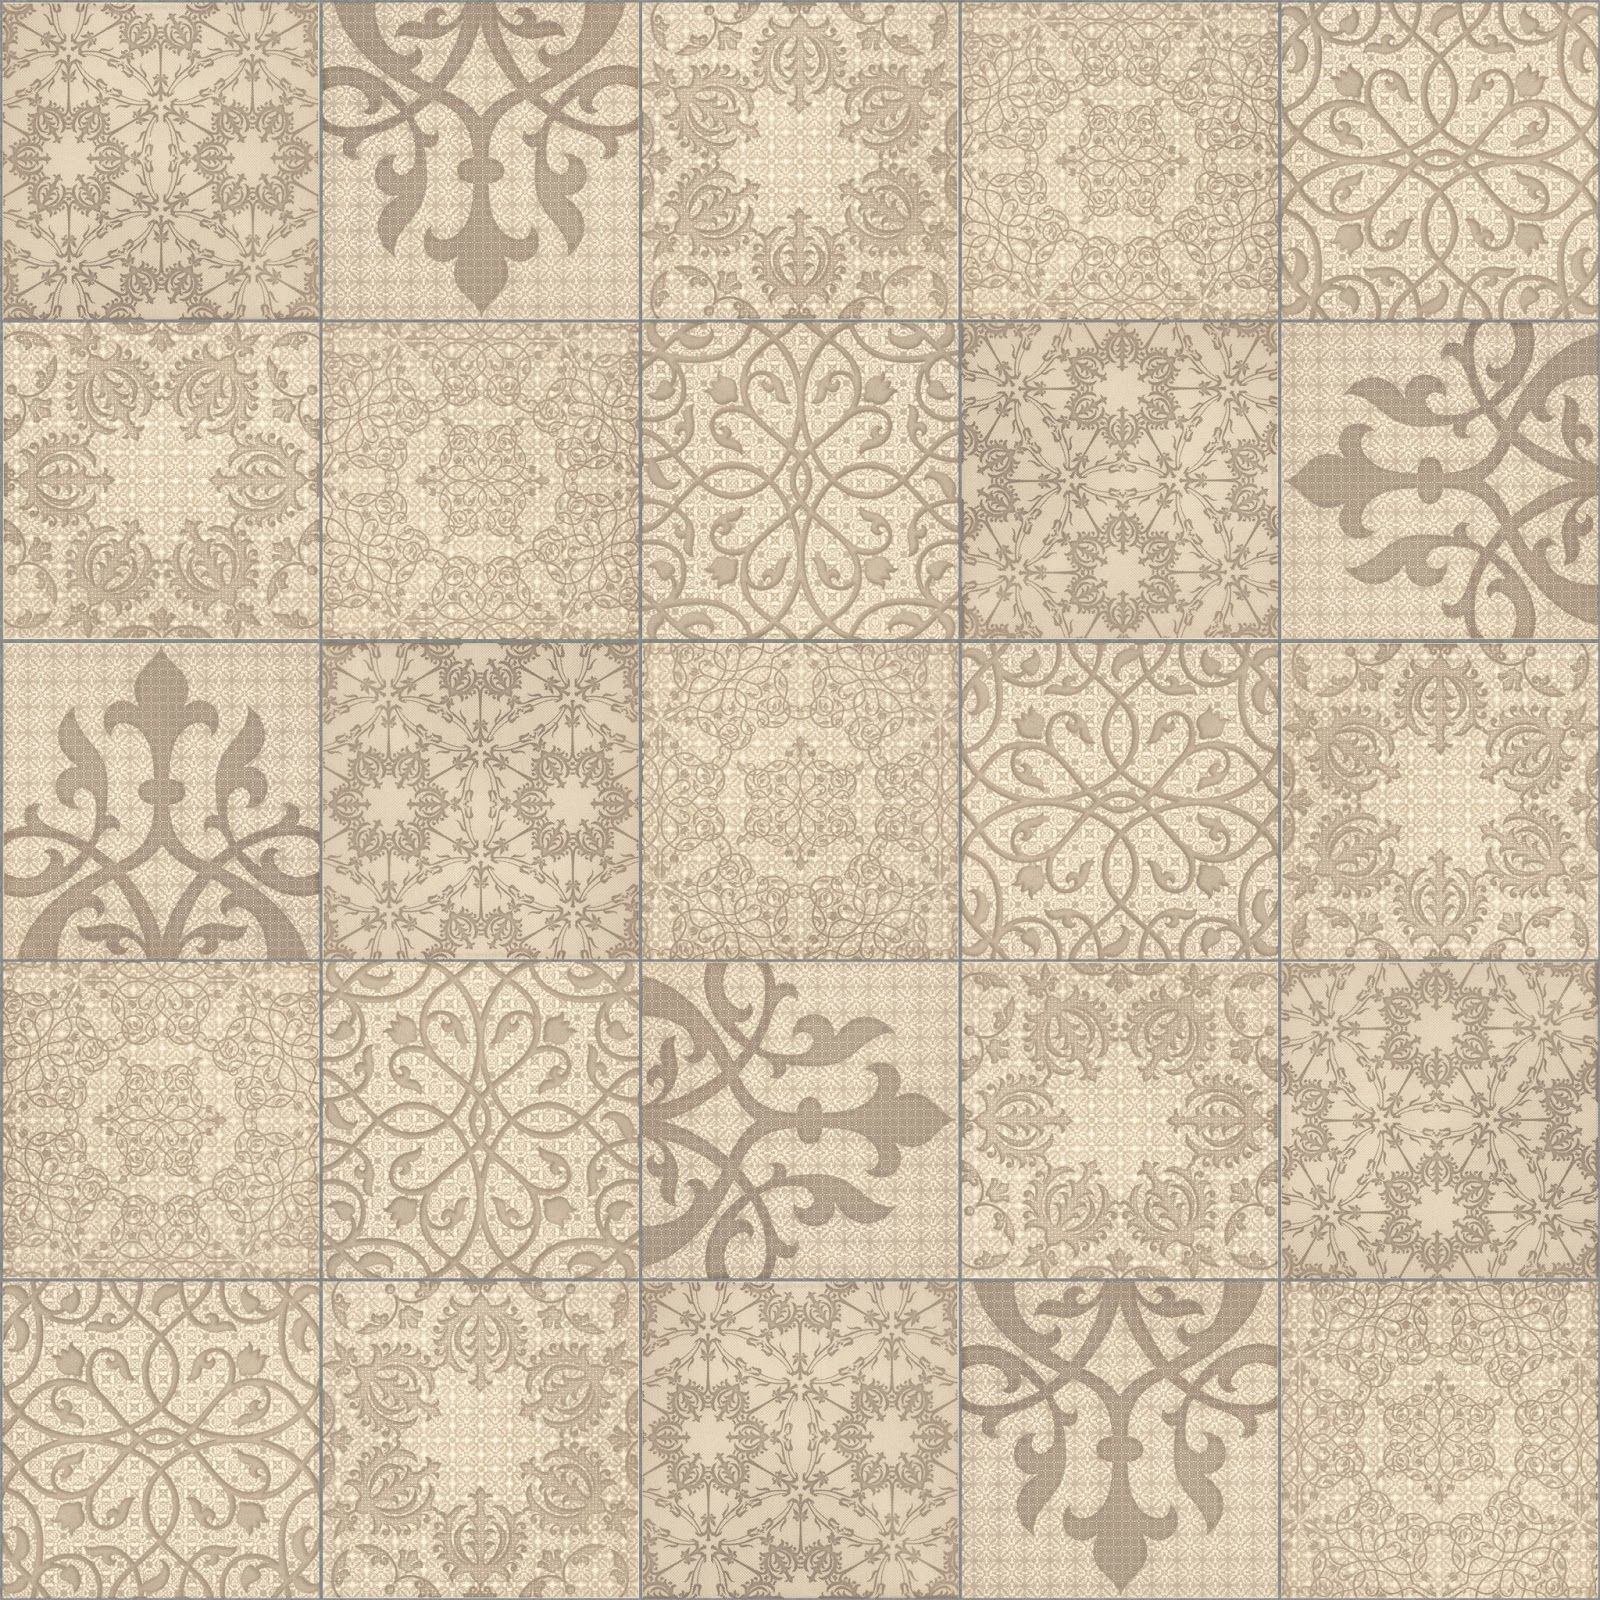 Ceramic Tiles Texture Design Ideas 14444 Floor Ideas Design Haaz Pinterest Texture Design